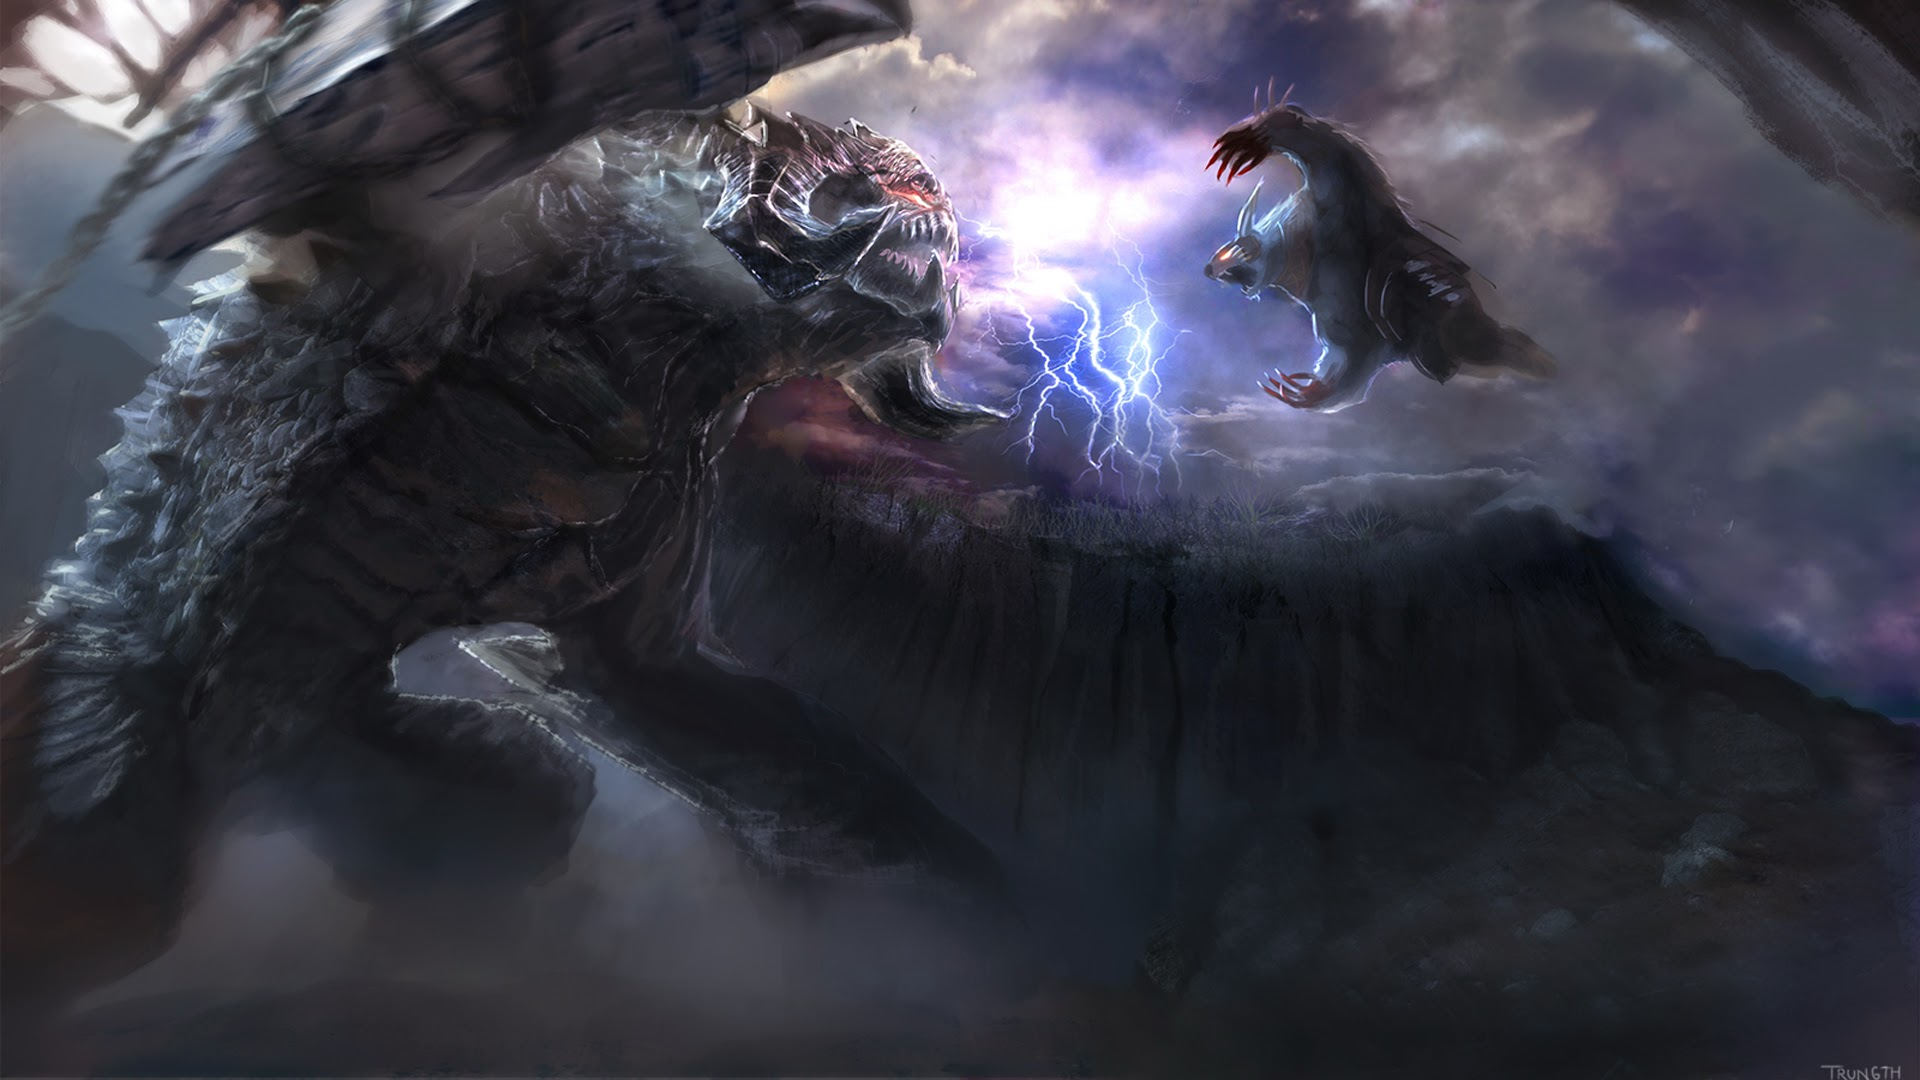 Roshan vs Ursa Dota 2 Clash Fight 18 Wallpaper HD